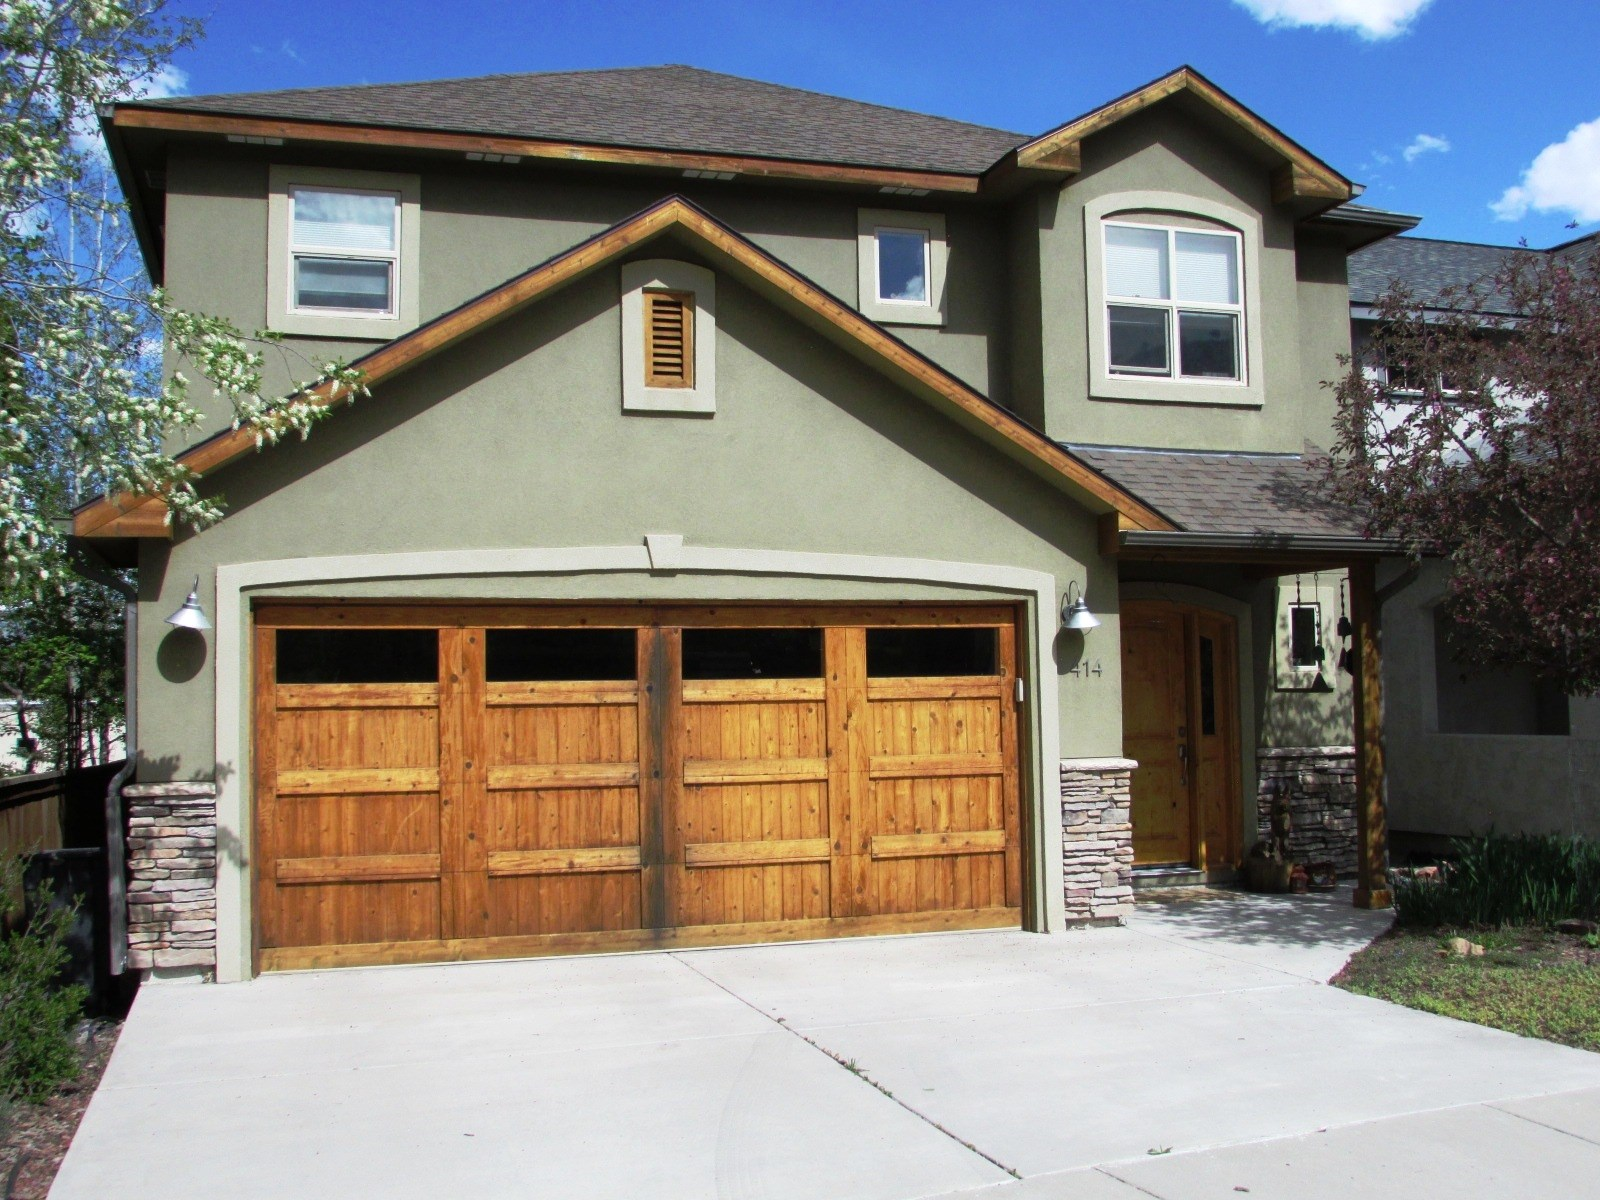 Mountain Country Home For Sale in Ridgway Colorado